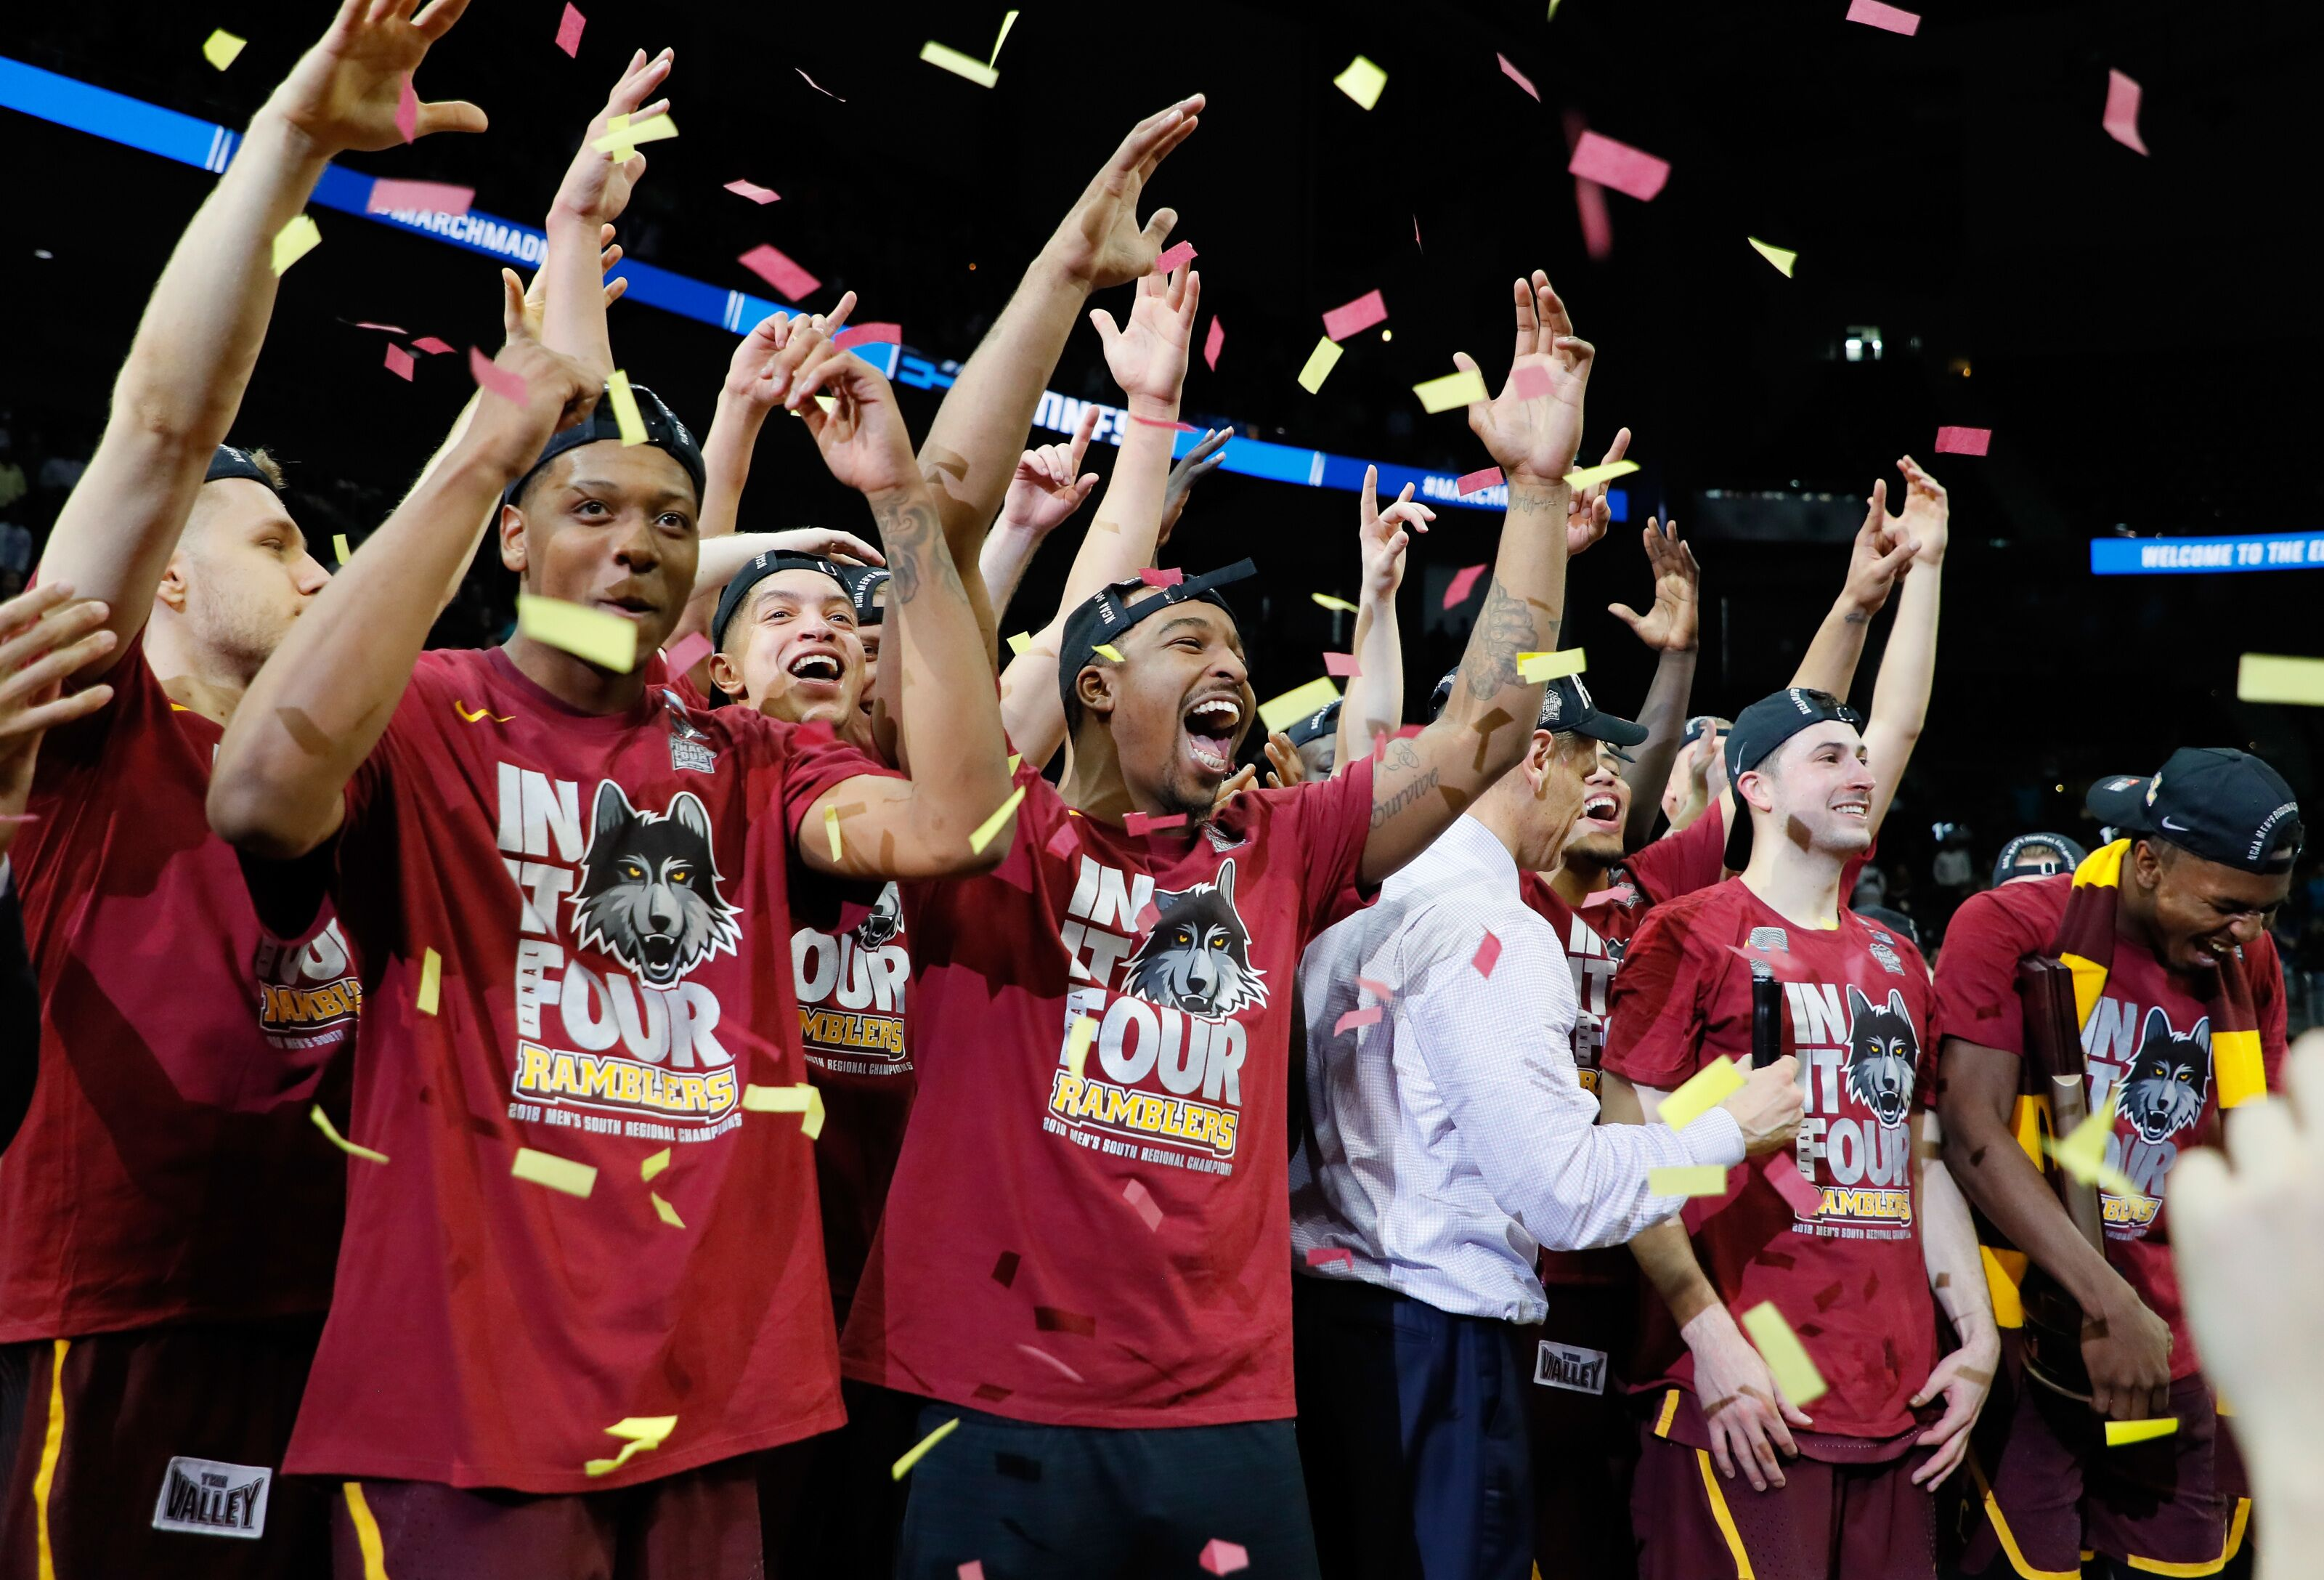 CBI Basketball: Why the College Basketball Invitational matters for programs